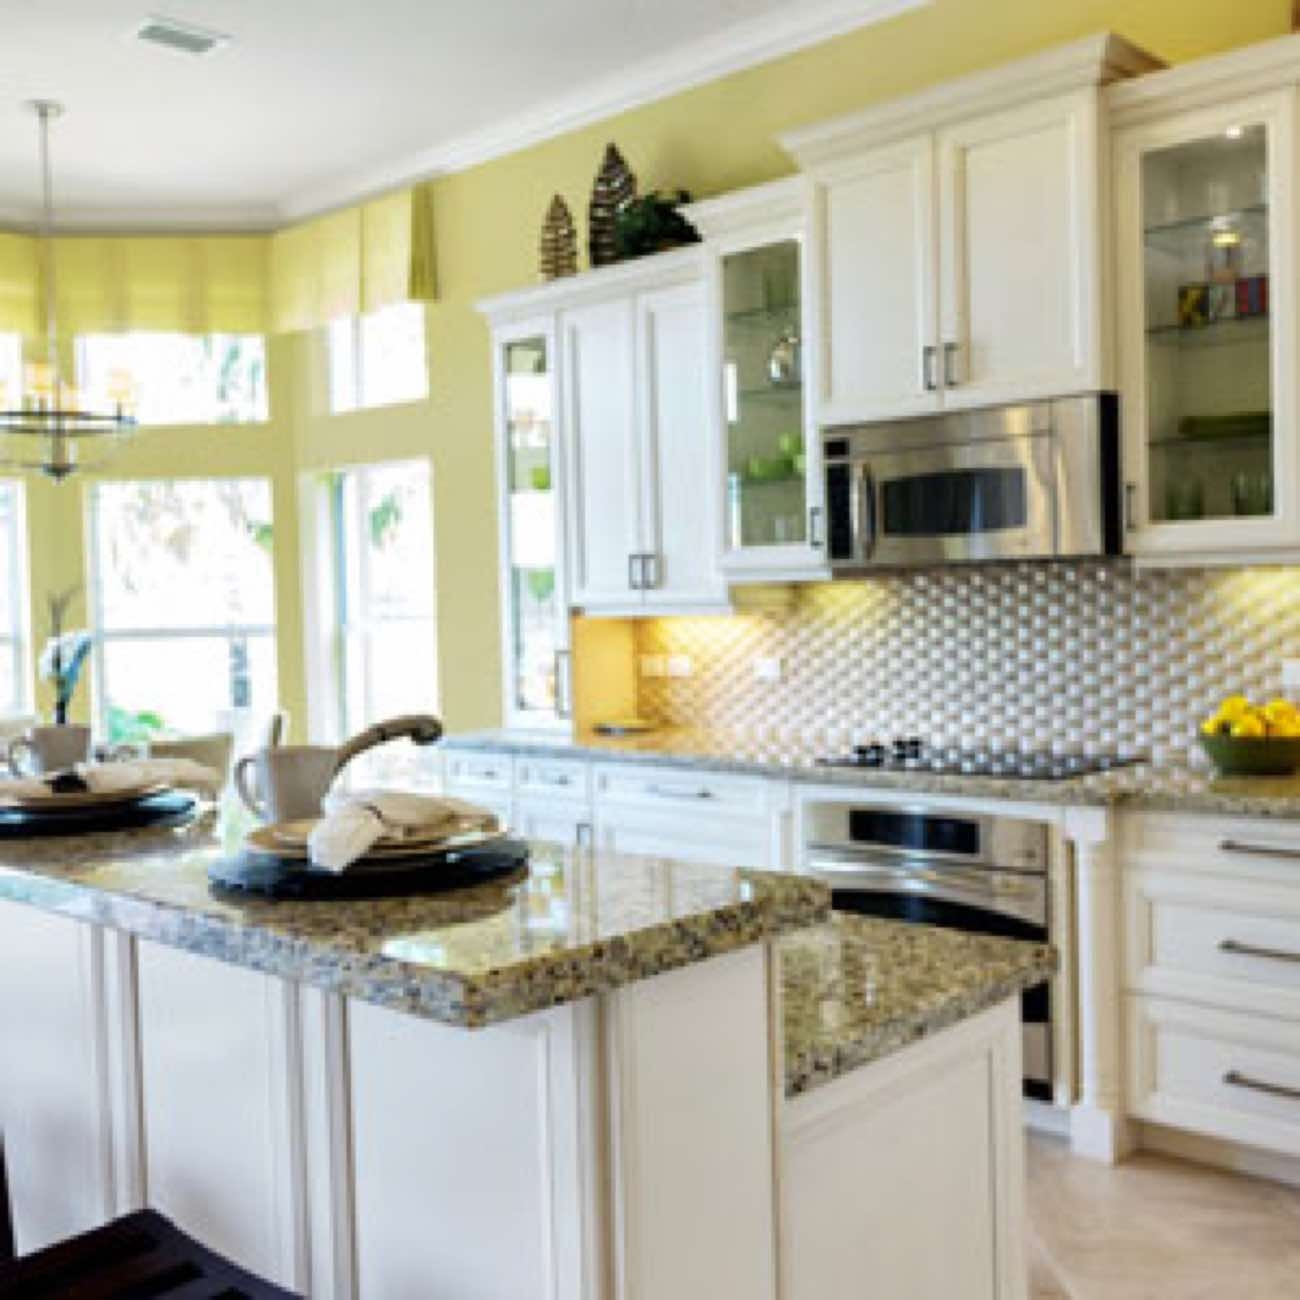 Should Kitchen Cabinets Have Handles Or Knobs Kitchen